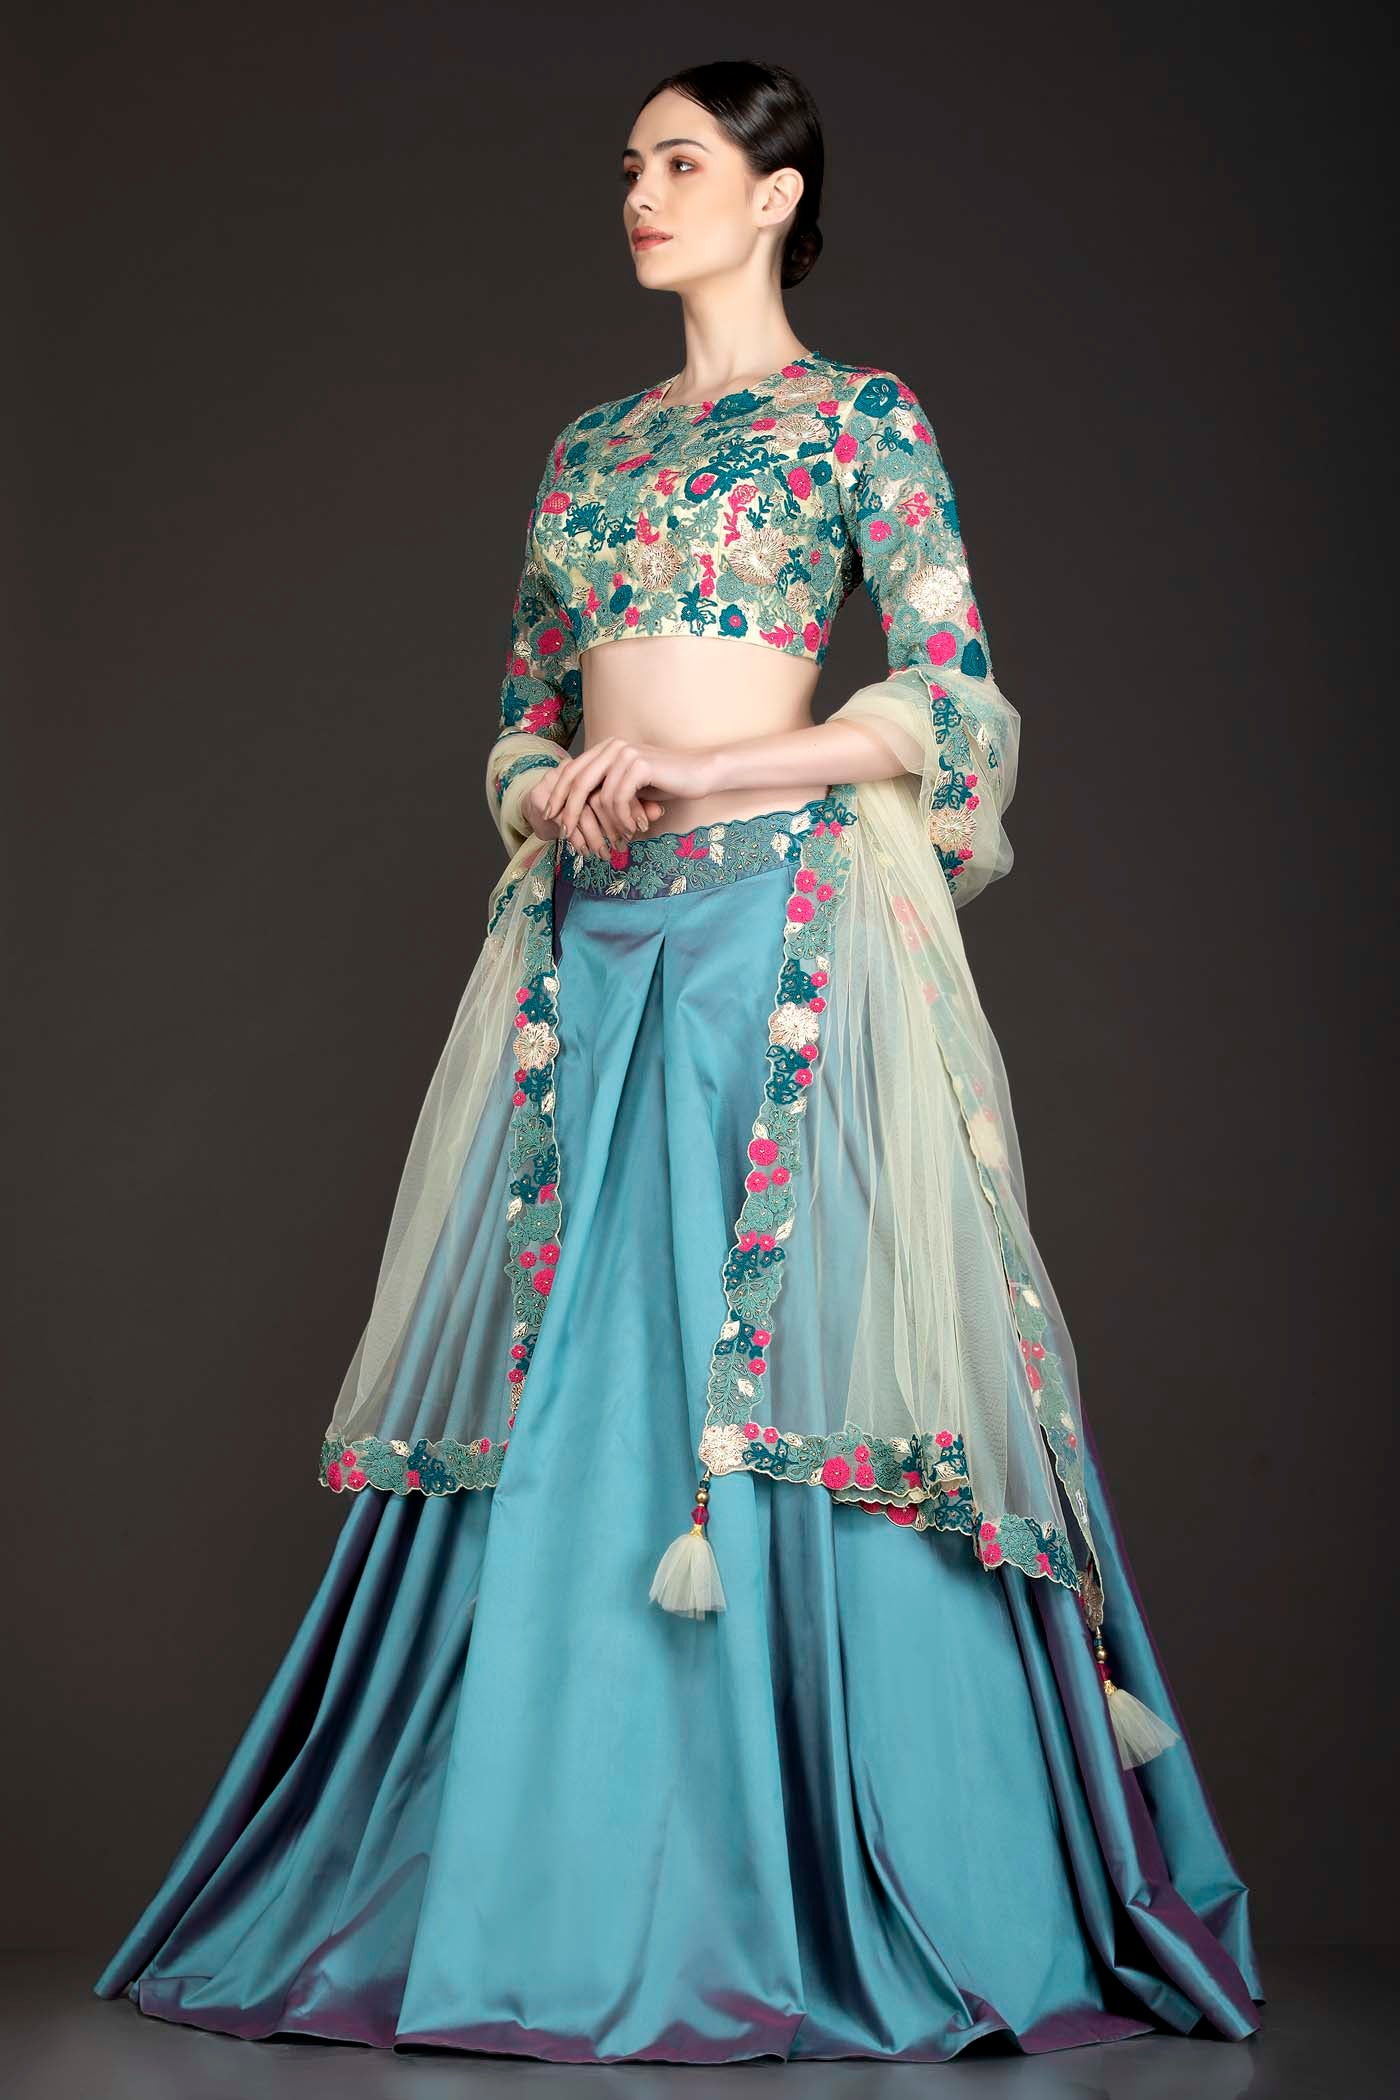 Blue Colour Silk Box Pleat Skirt With Gold Net Top And Dupatta